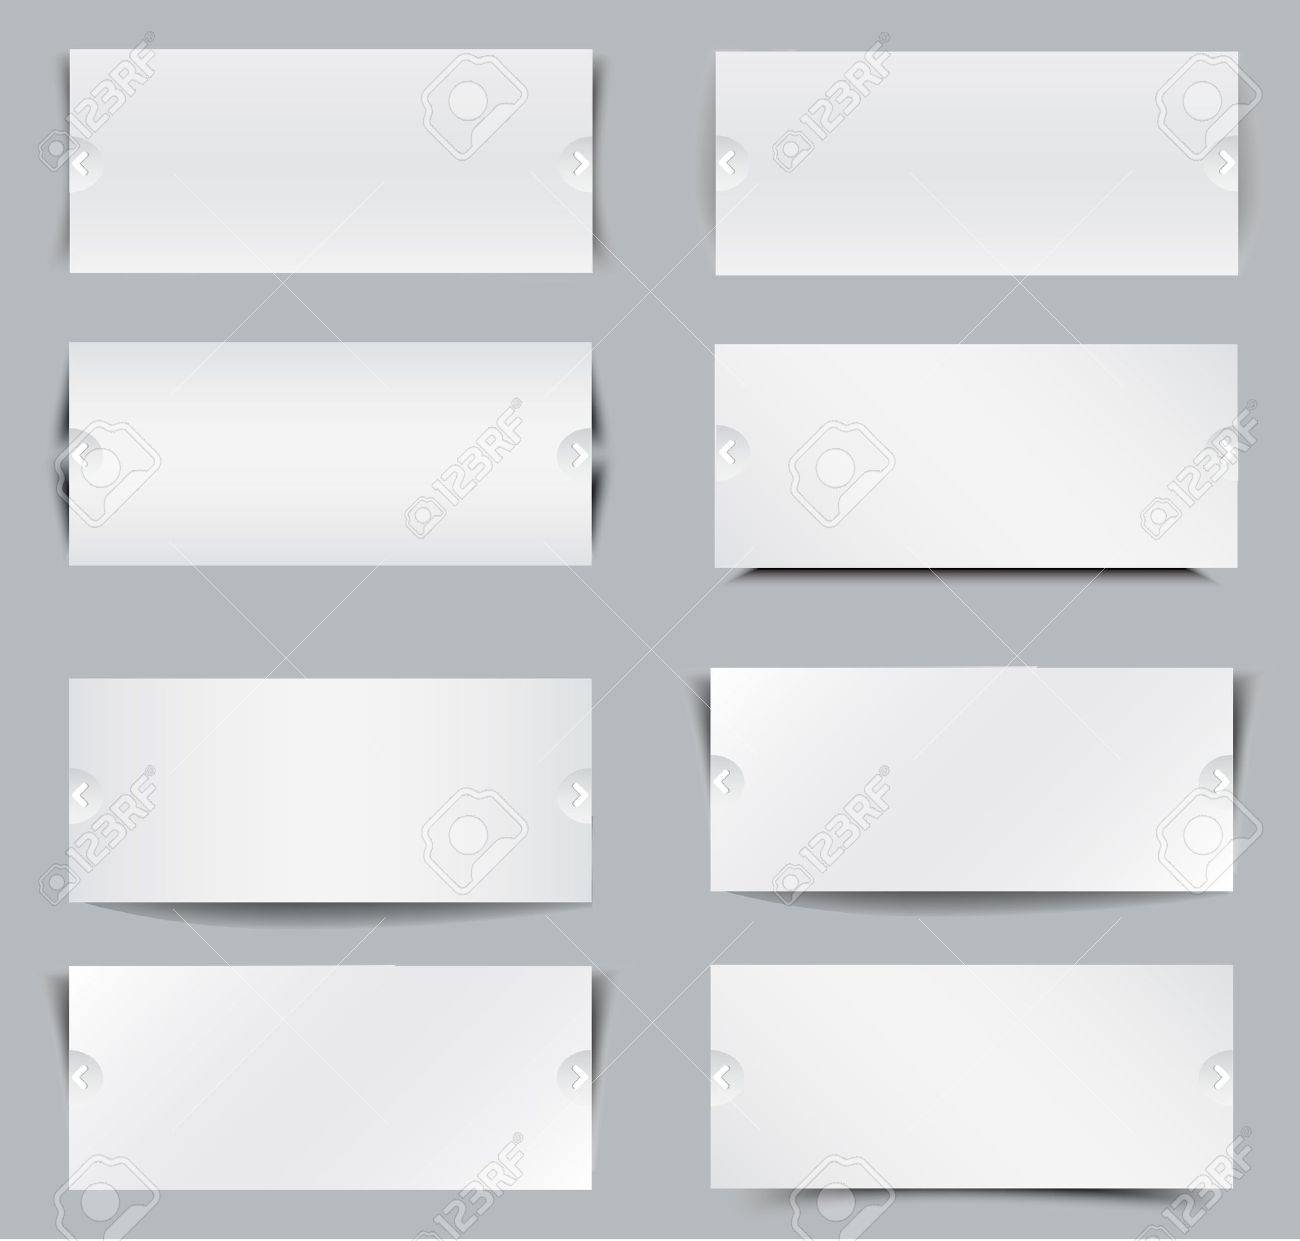 Blank Templates For Web Banner Royalty Free Cliparts Vectors And - Blank vinyl banners